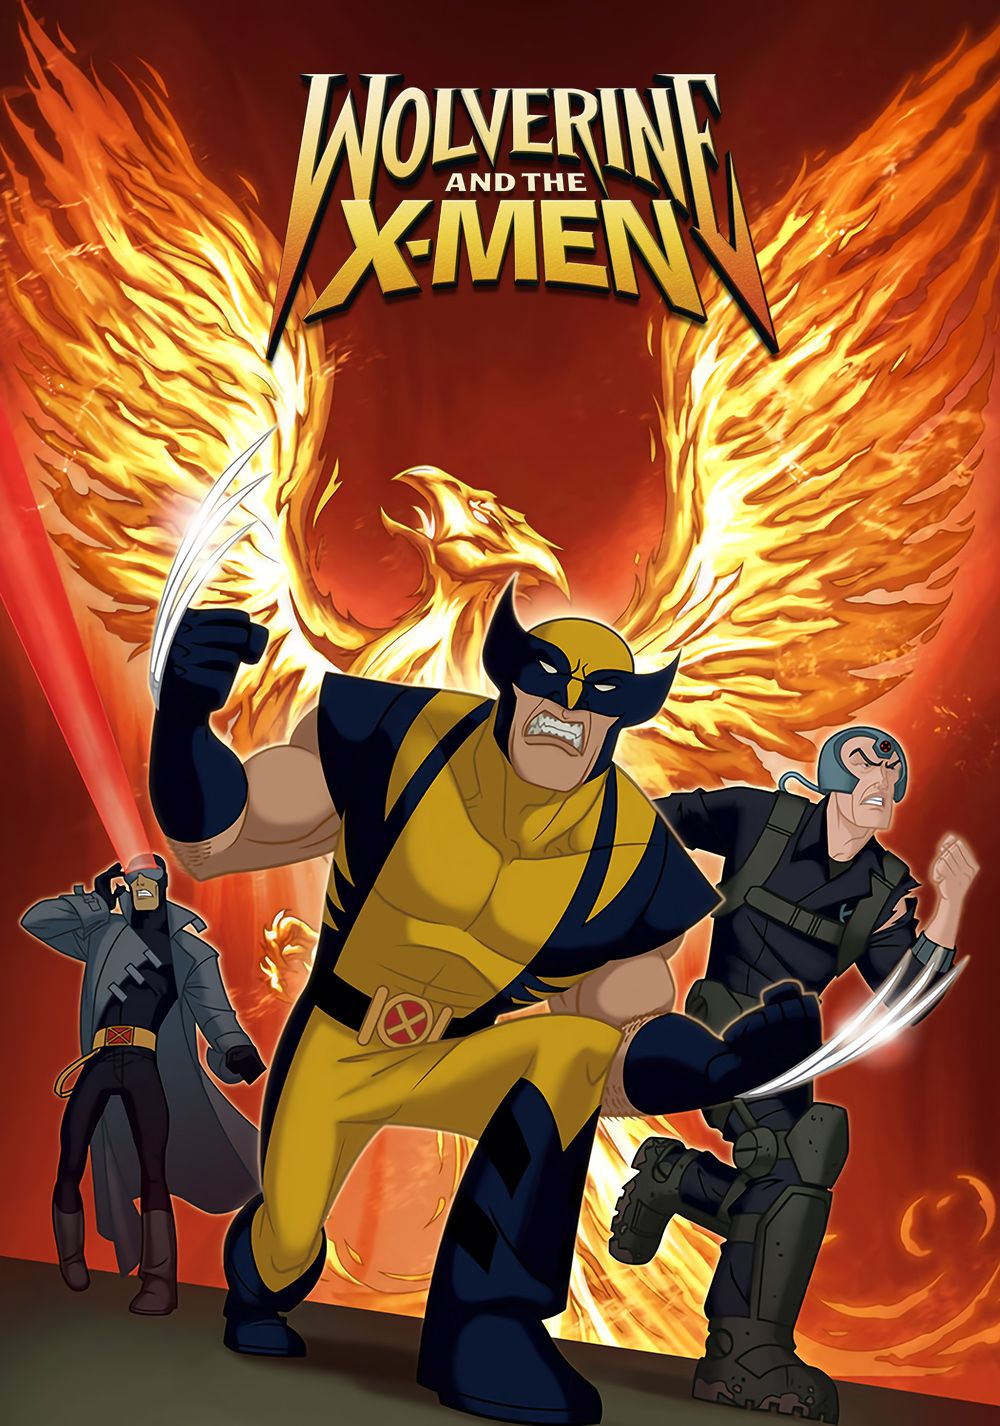 Wolverine And The X Men 2008 2009 Past And Future Collide Threatening To End Human And Mutant Kind X Men Wolverine Marvel Marvel Cartoons